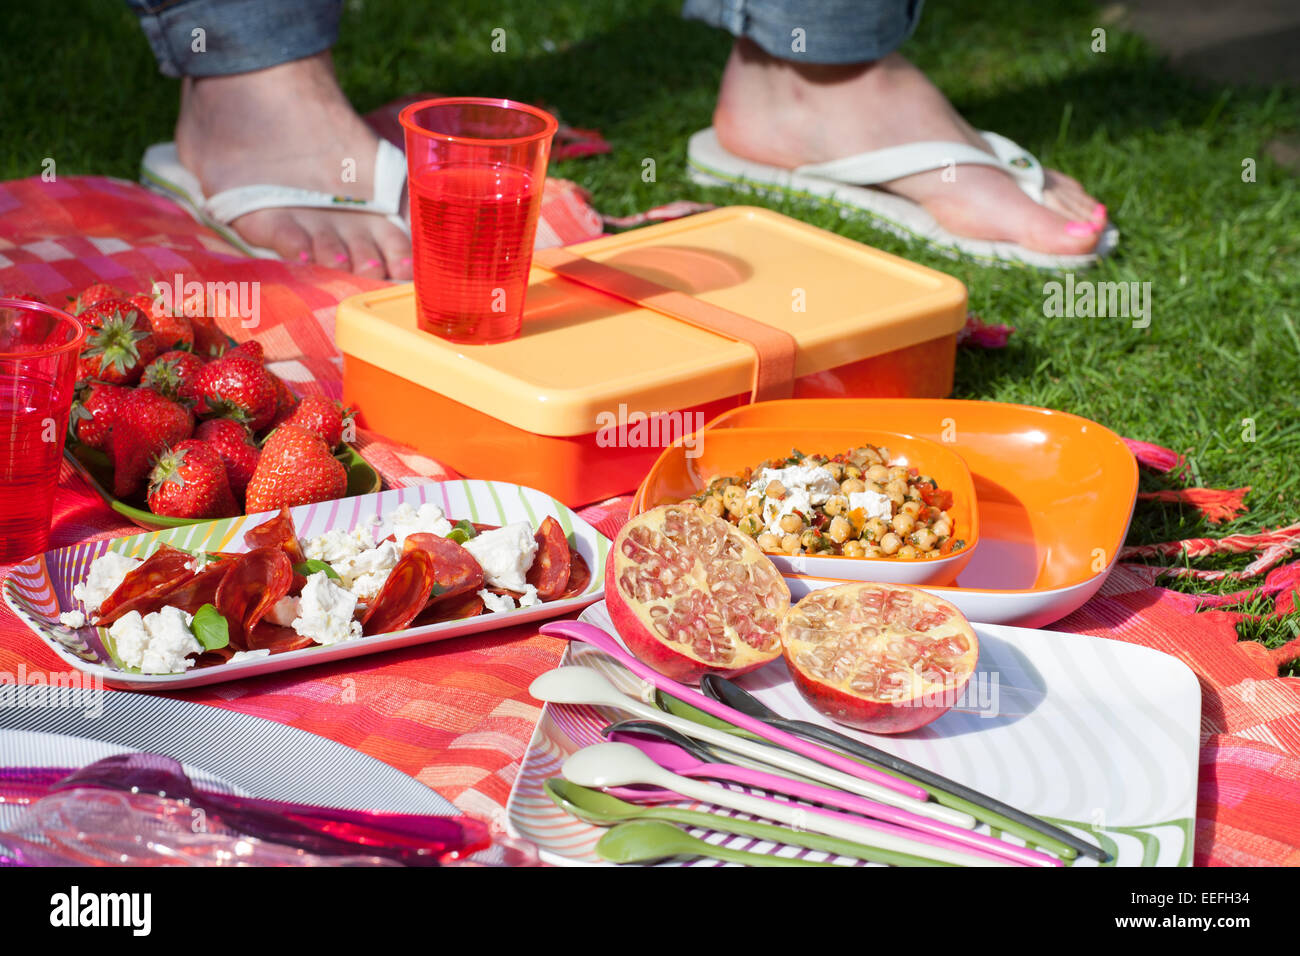 Outdoor picnic - Stock Image